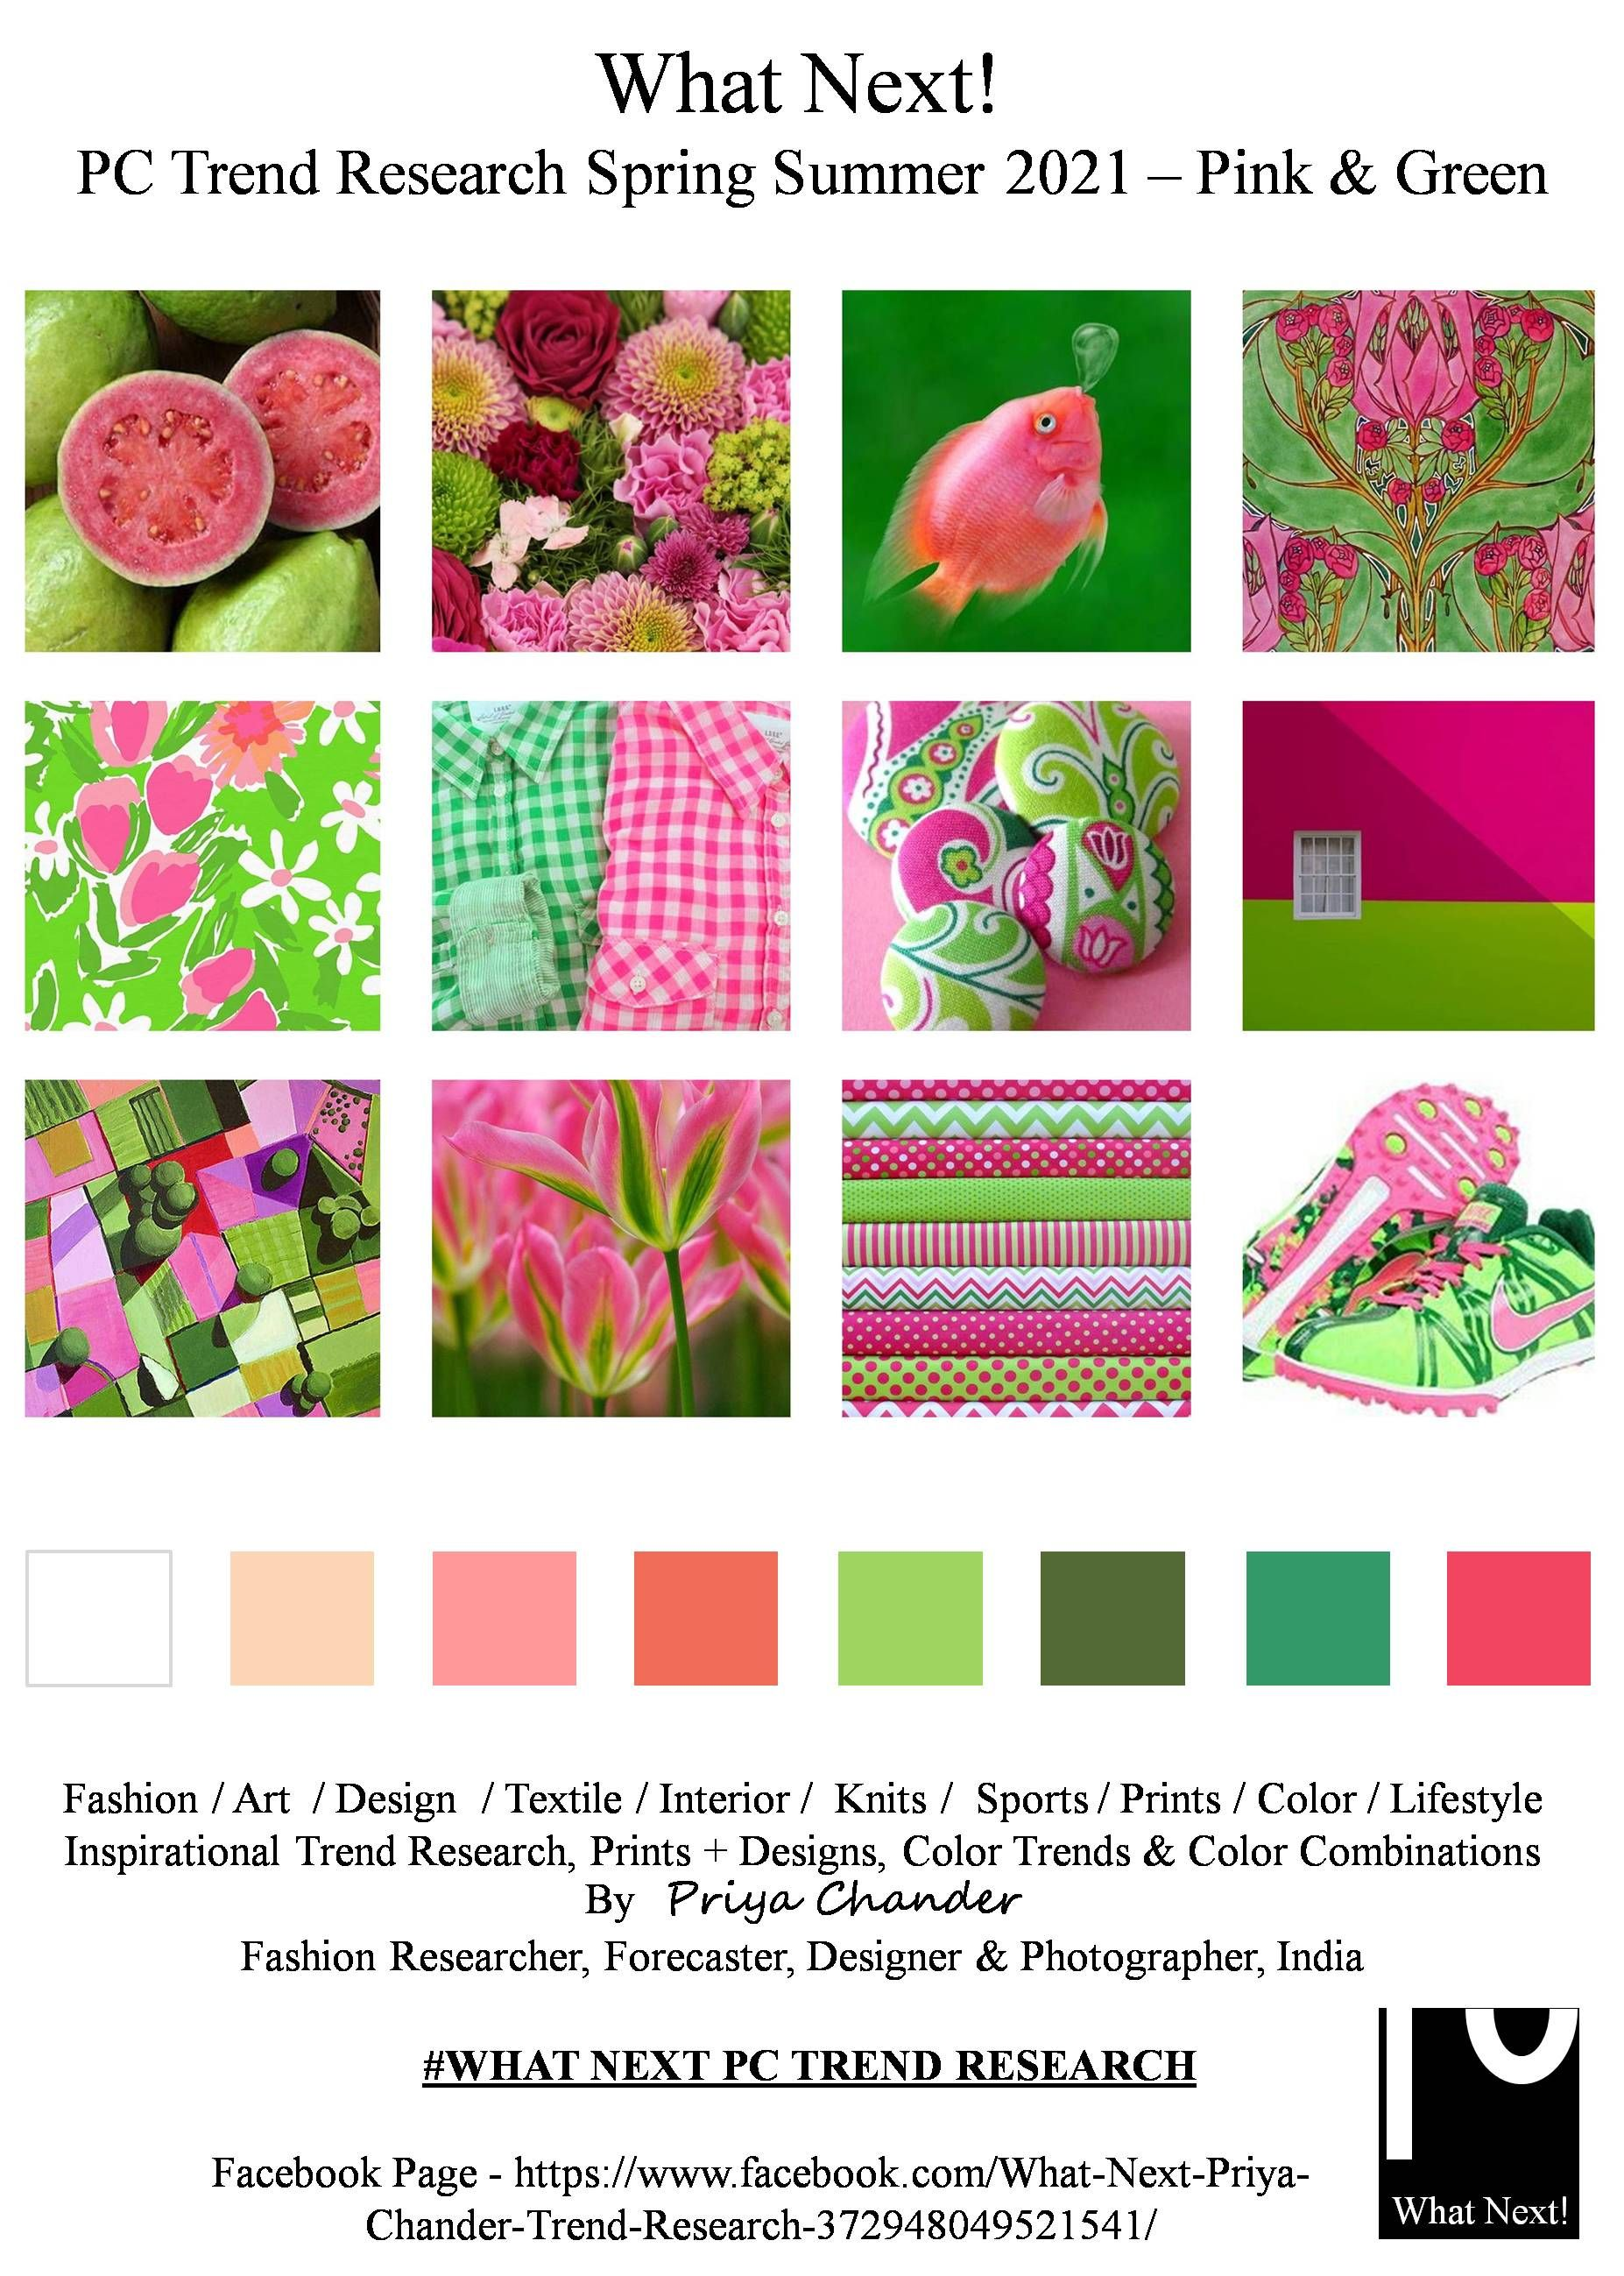 Pin by Terri Kleismit on colors 2021 in 2019 | Trend fabrics